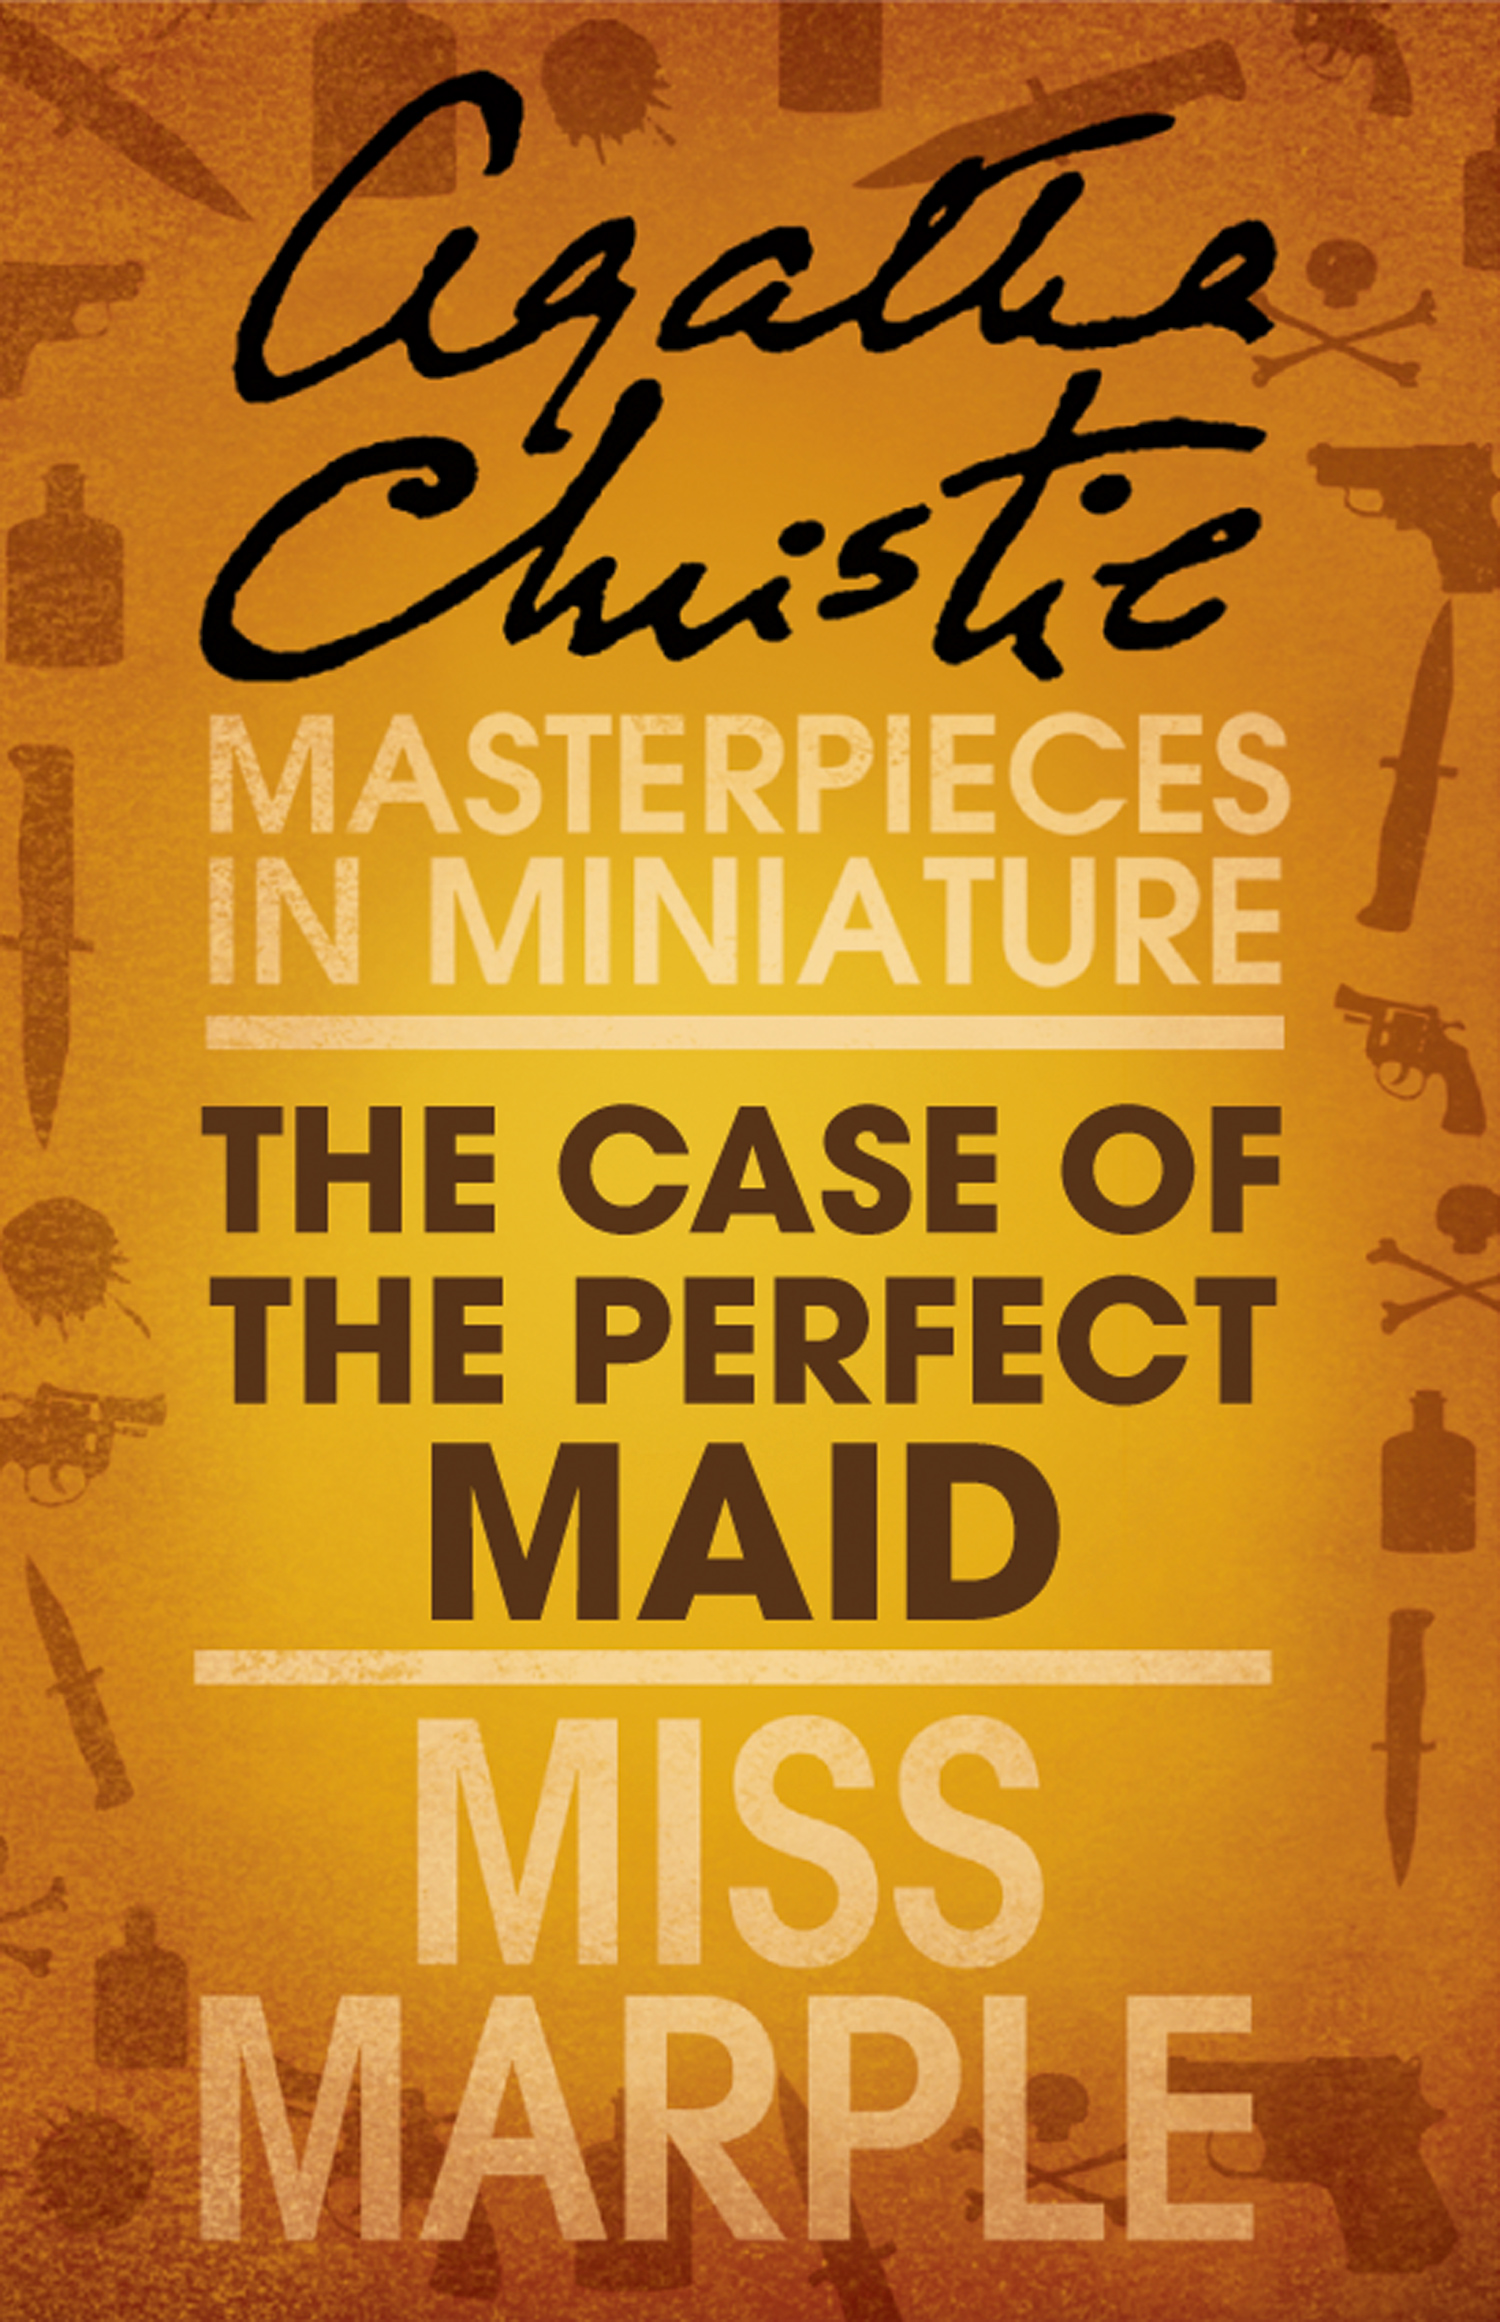 The Case of the Perfect Maid: A Miss Marple Short Story